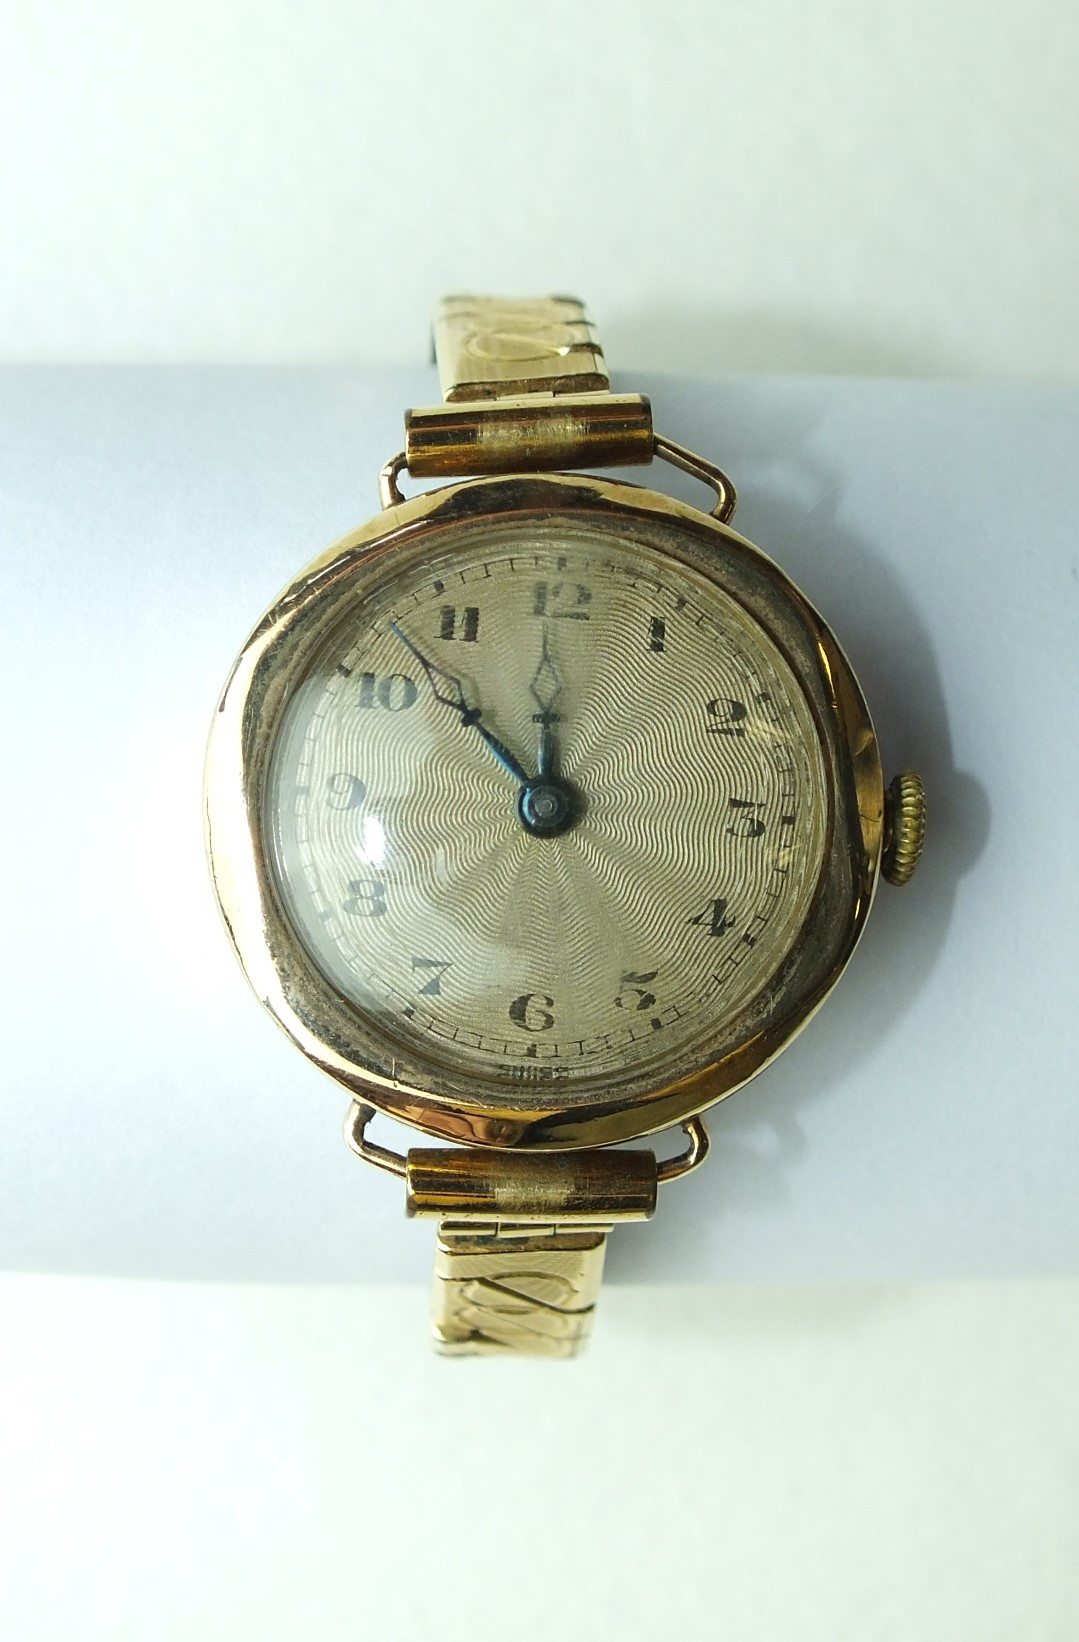 Lot 271 - A ladies 9ct-gold-cased wrist watch on plated bracelet.